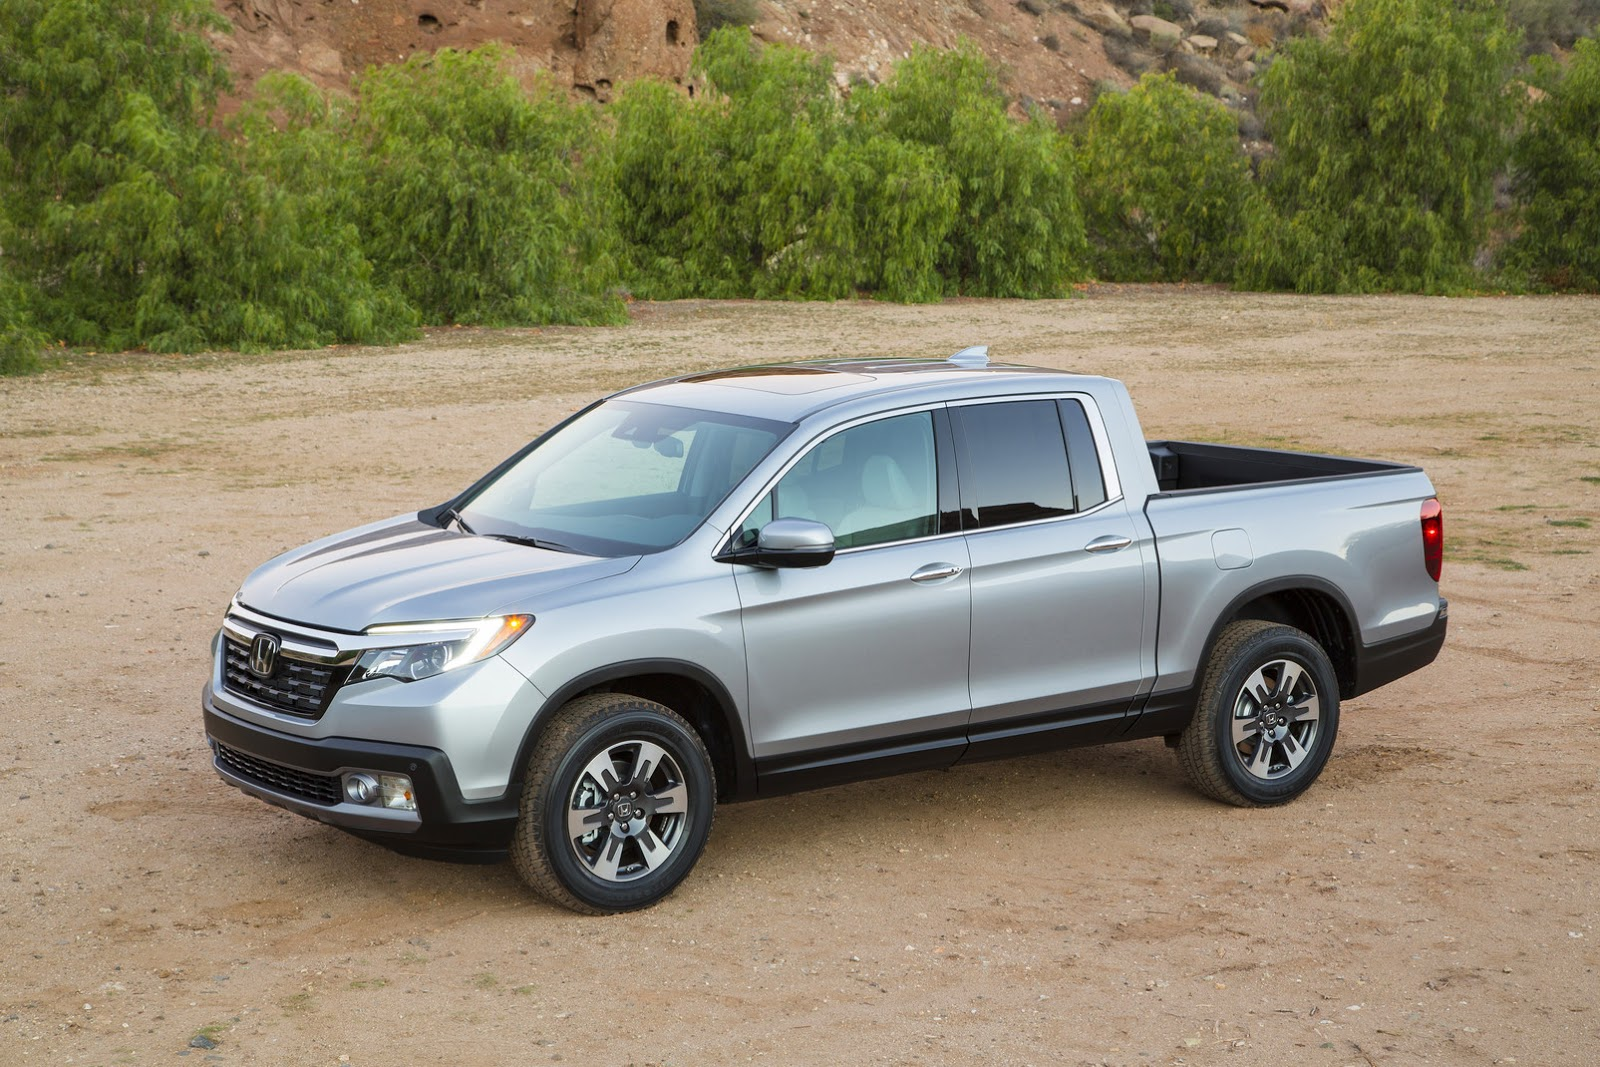 2017 Ridgeline Is Honda's New Soft Pickup Truck [Updated Gallery] | Carscoops